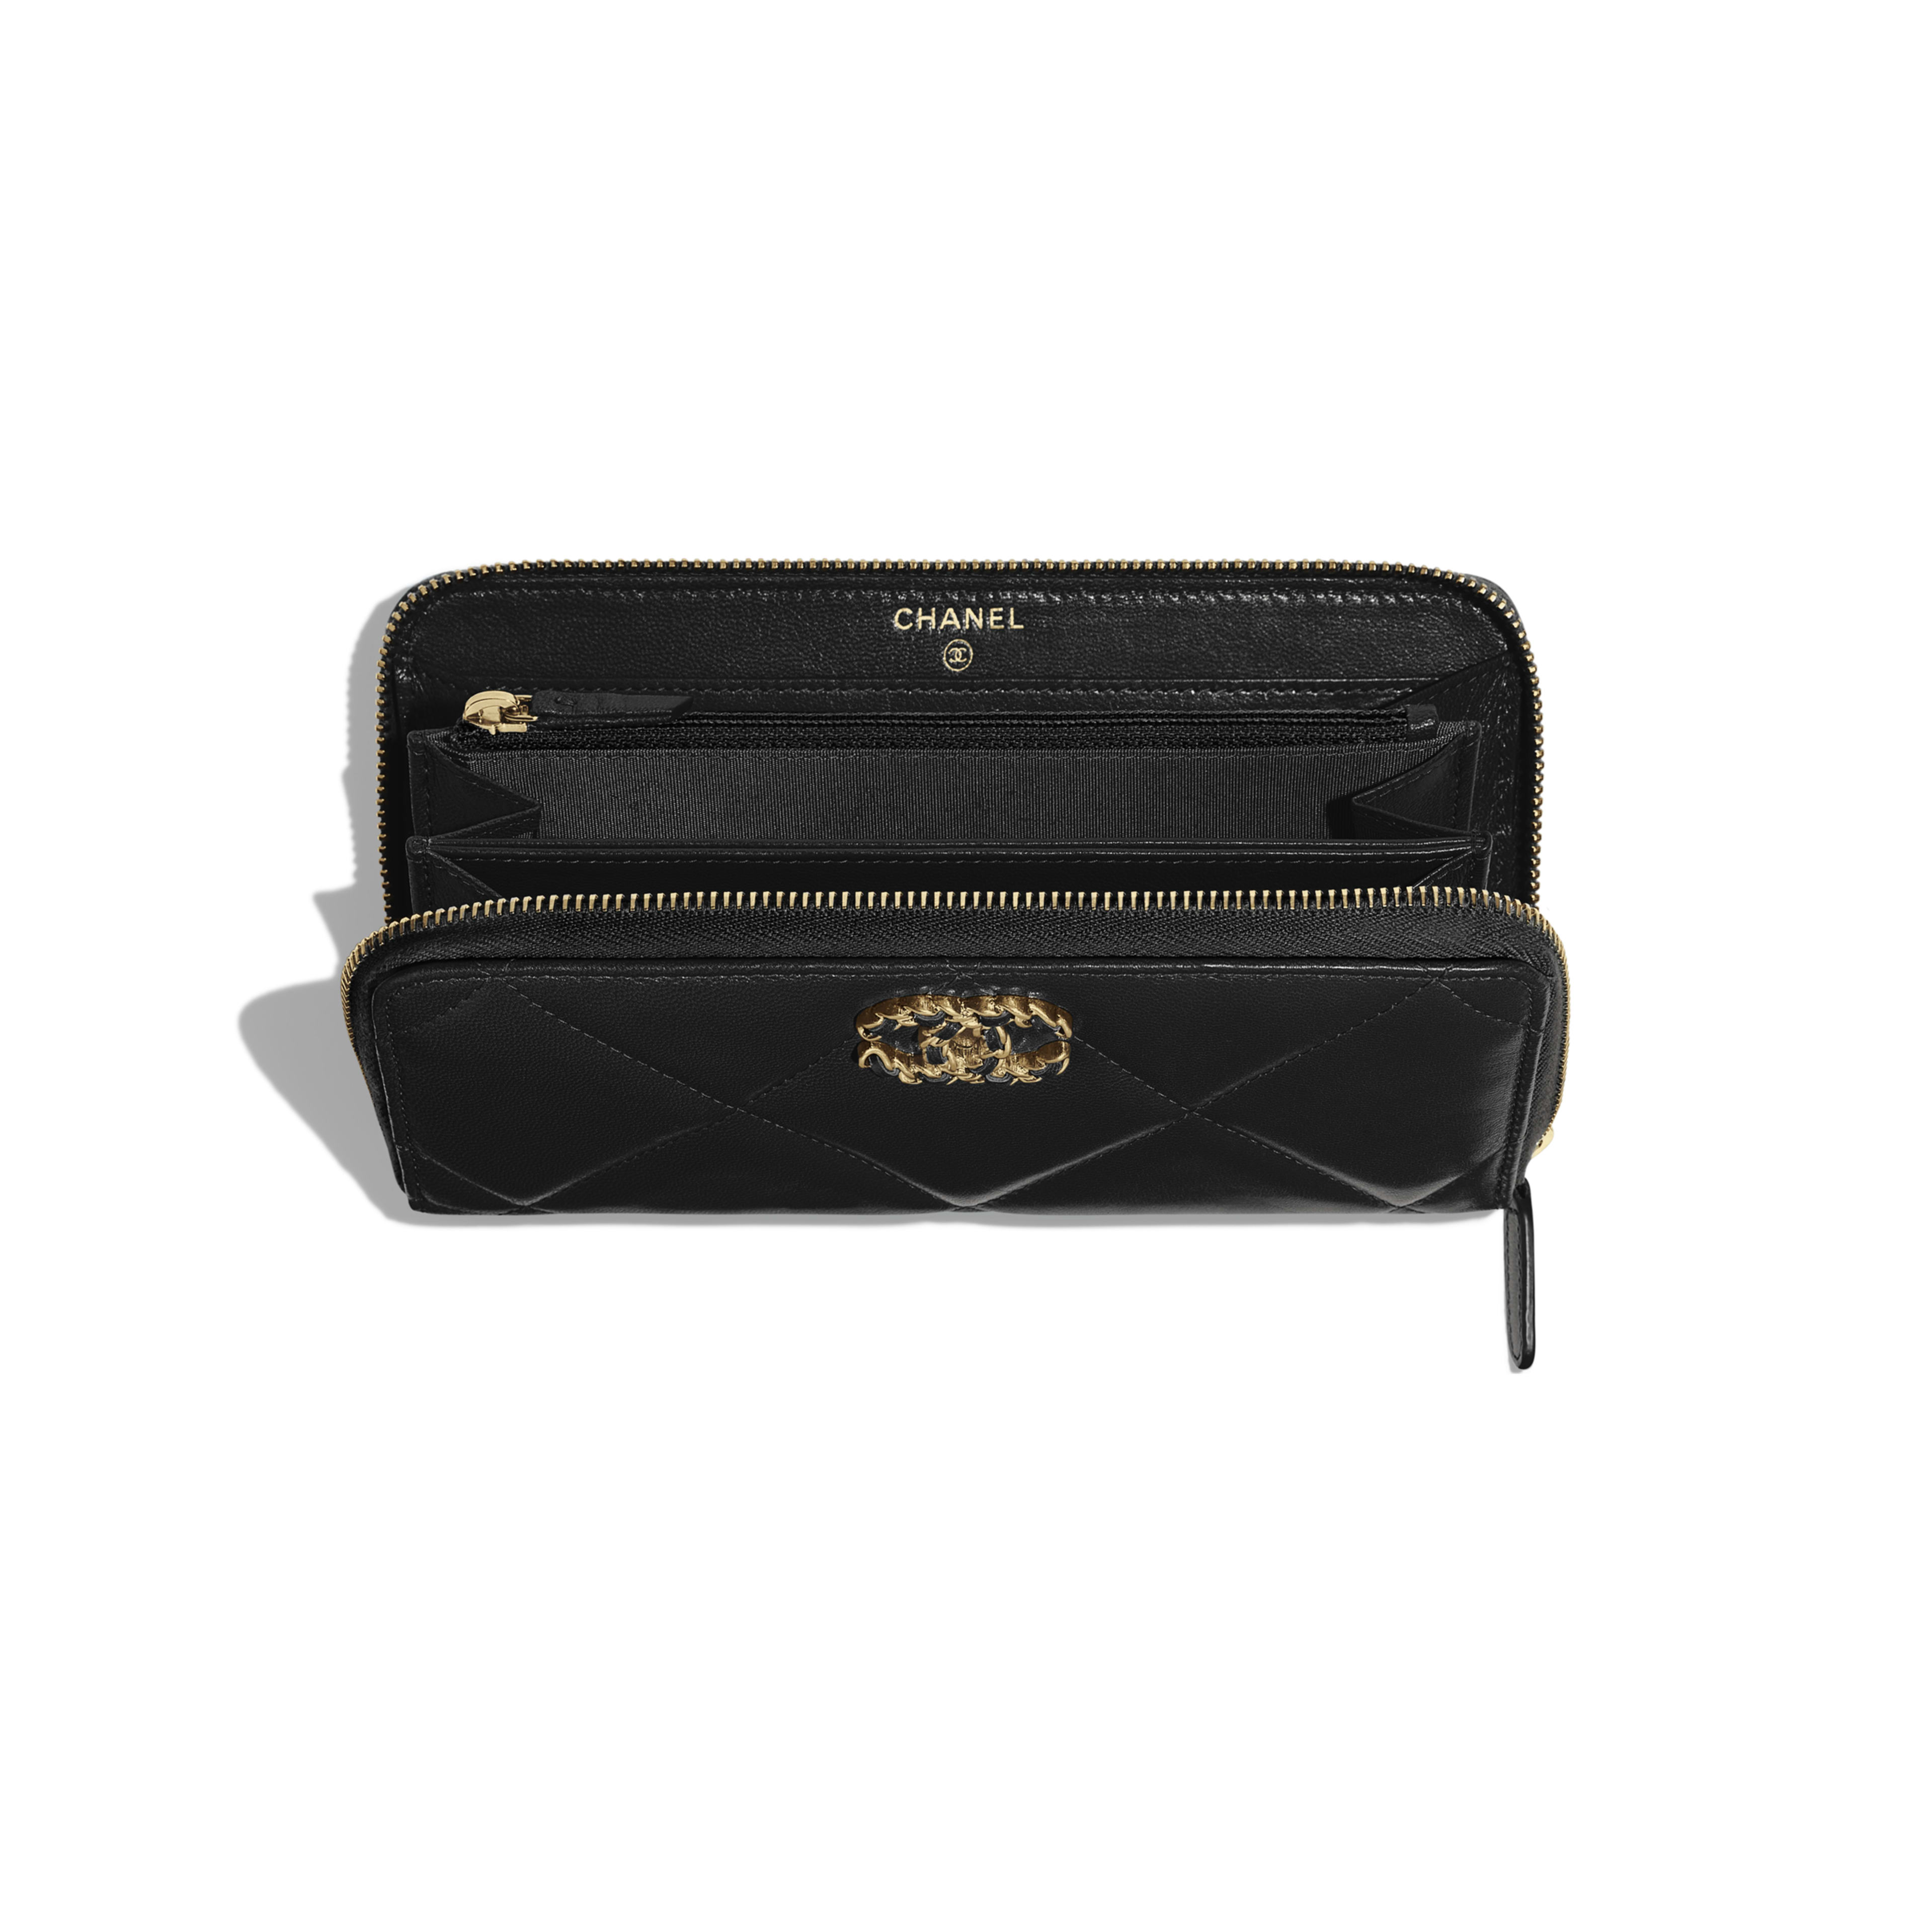 CHANEL 19 Long Zipped Wallet - Black - Goatskin, Gold-Tone, Silver-Tone & Ruthenium-Finish Metal - Other view - see full sized version